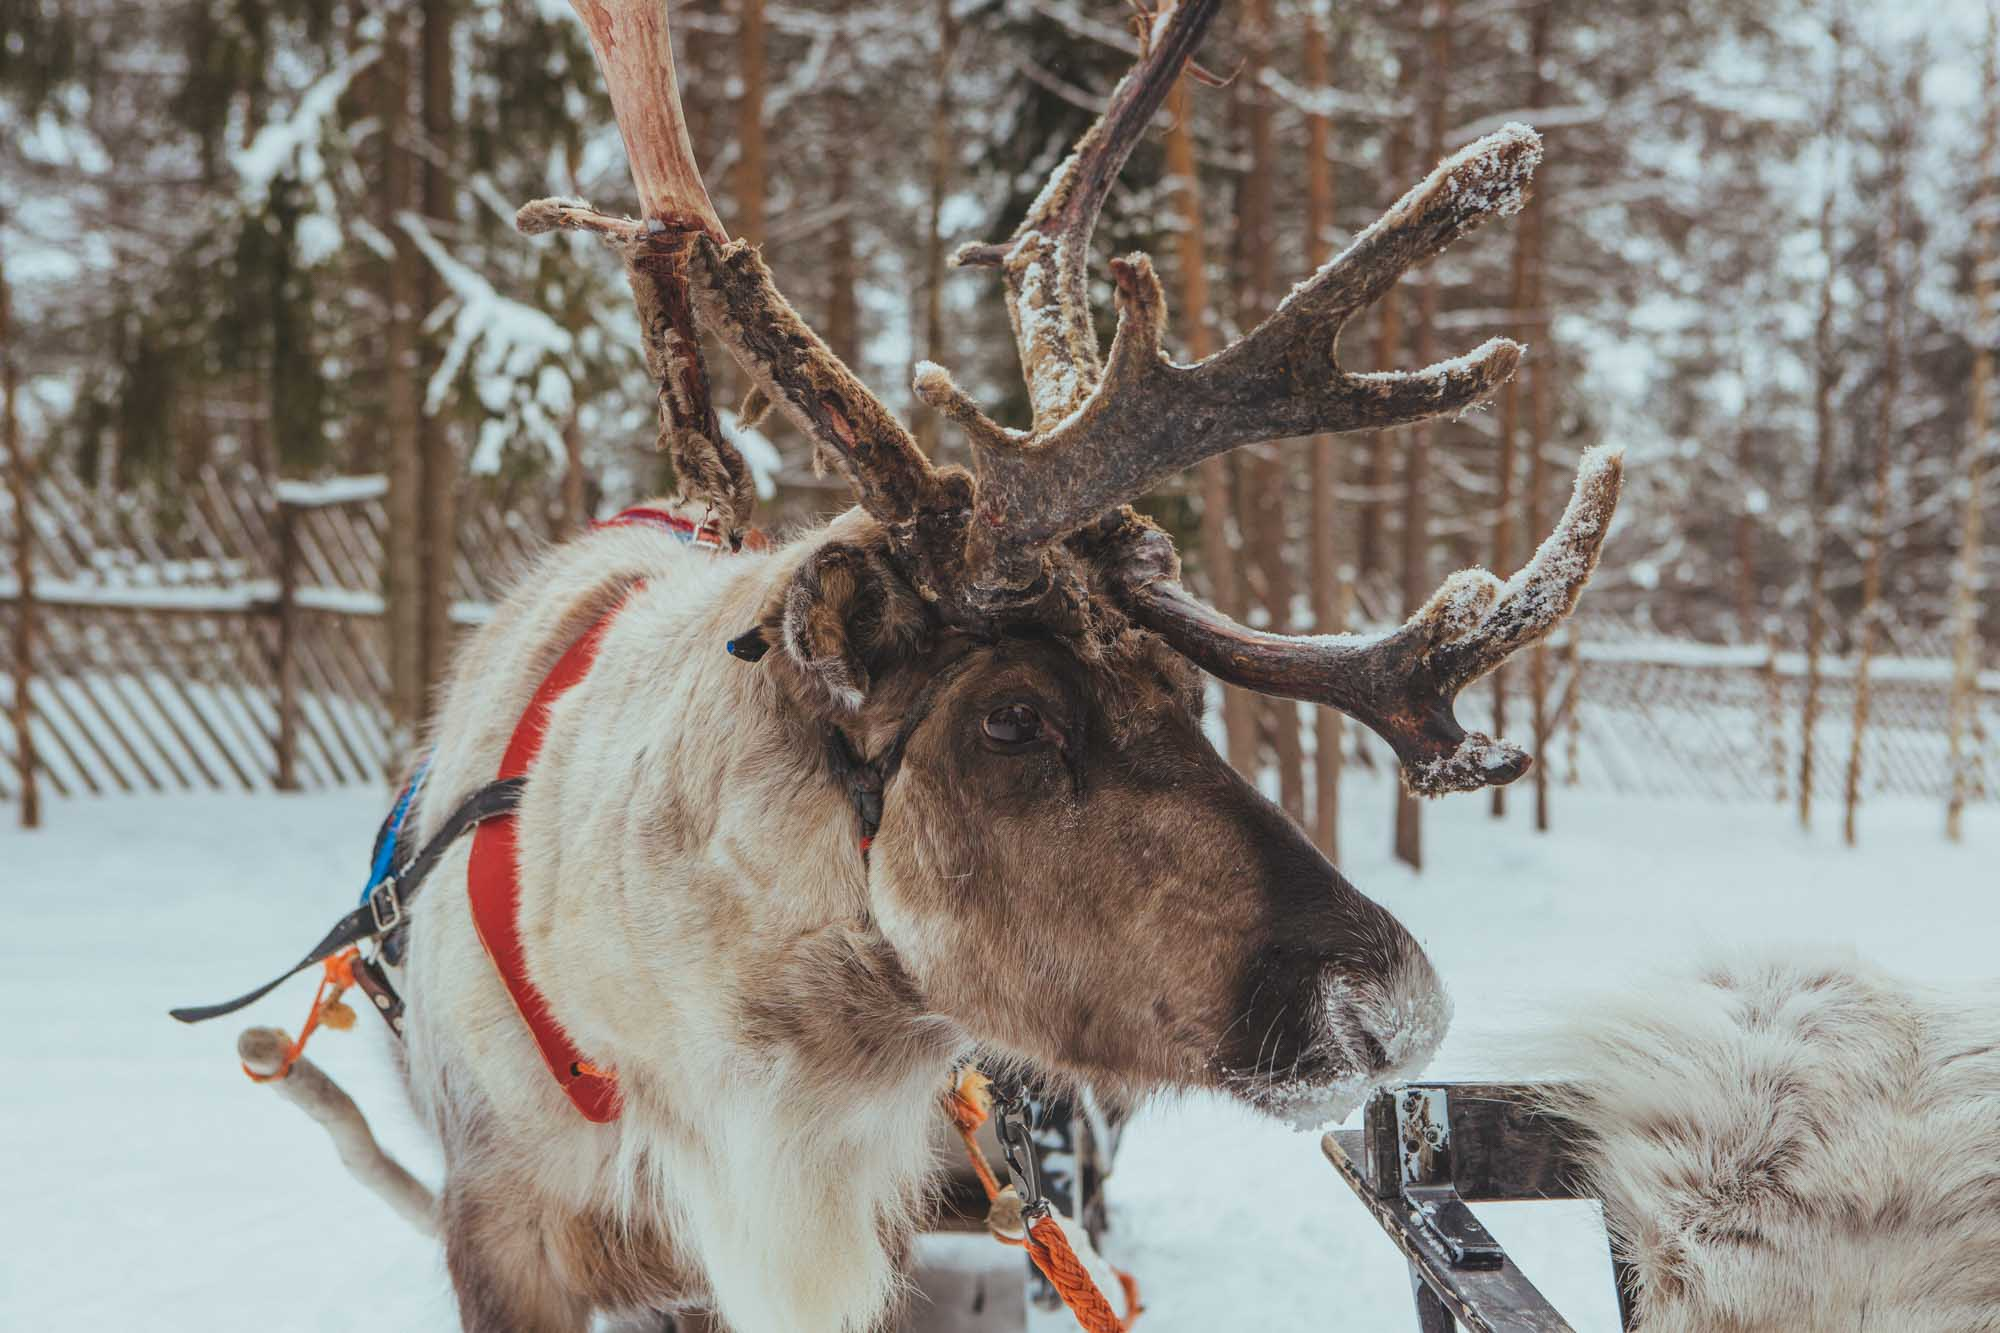 Lapland holiday tips - Jaakkola reindeer farm